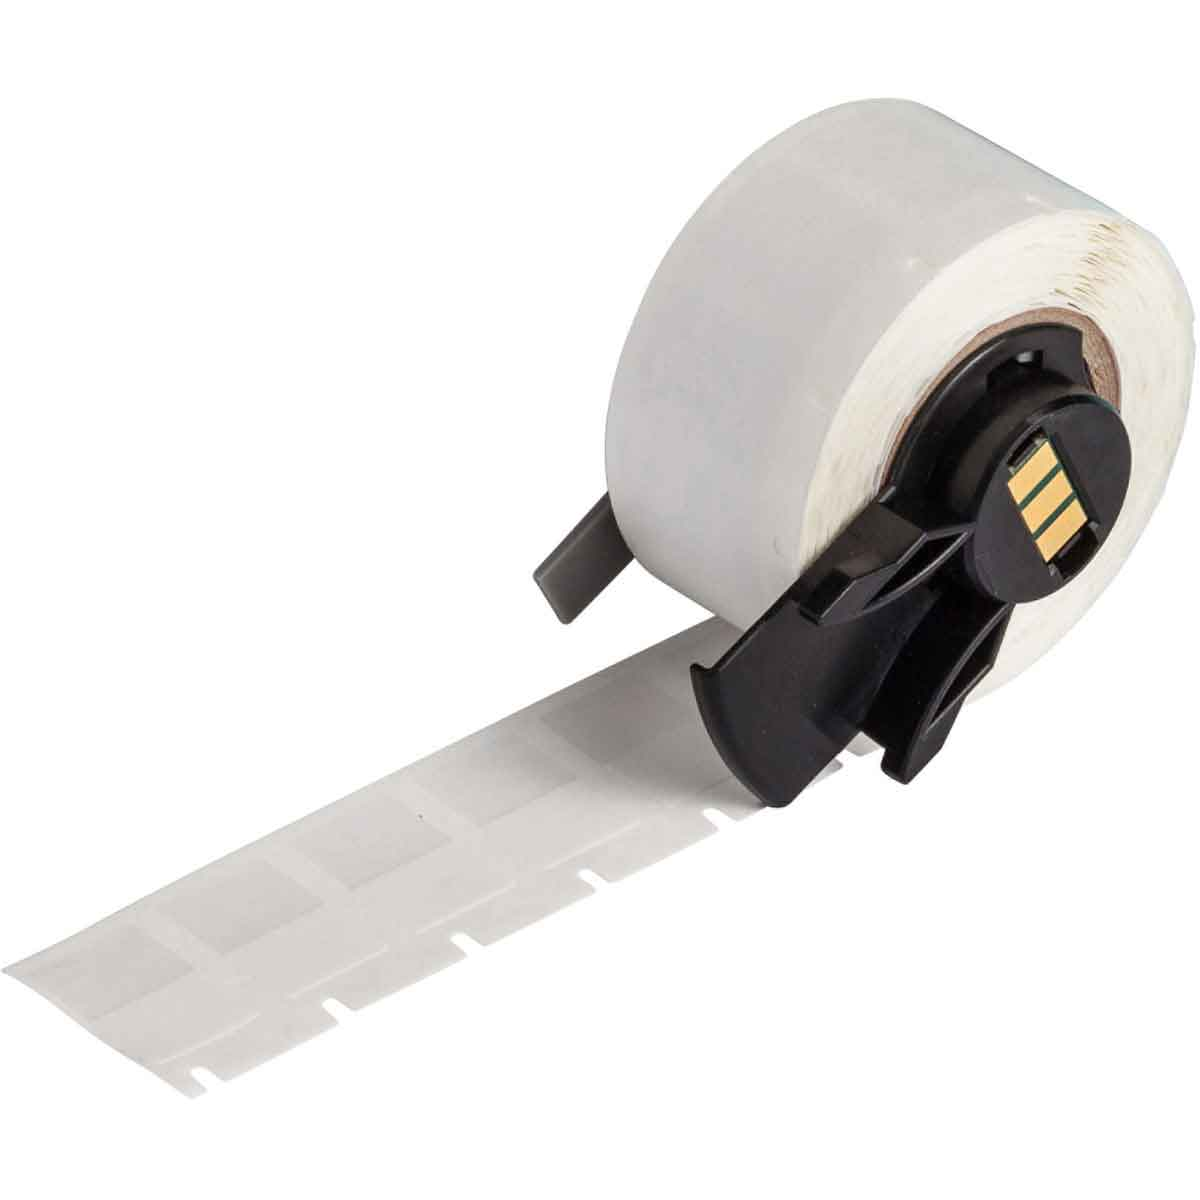 "Brady PTL-11-427 White Self-Laminating Vinyl Labels for TLS2200 / TLS-PC Link Printers, .50"" x .75"" label, 16-10ga wire"